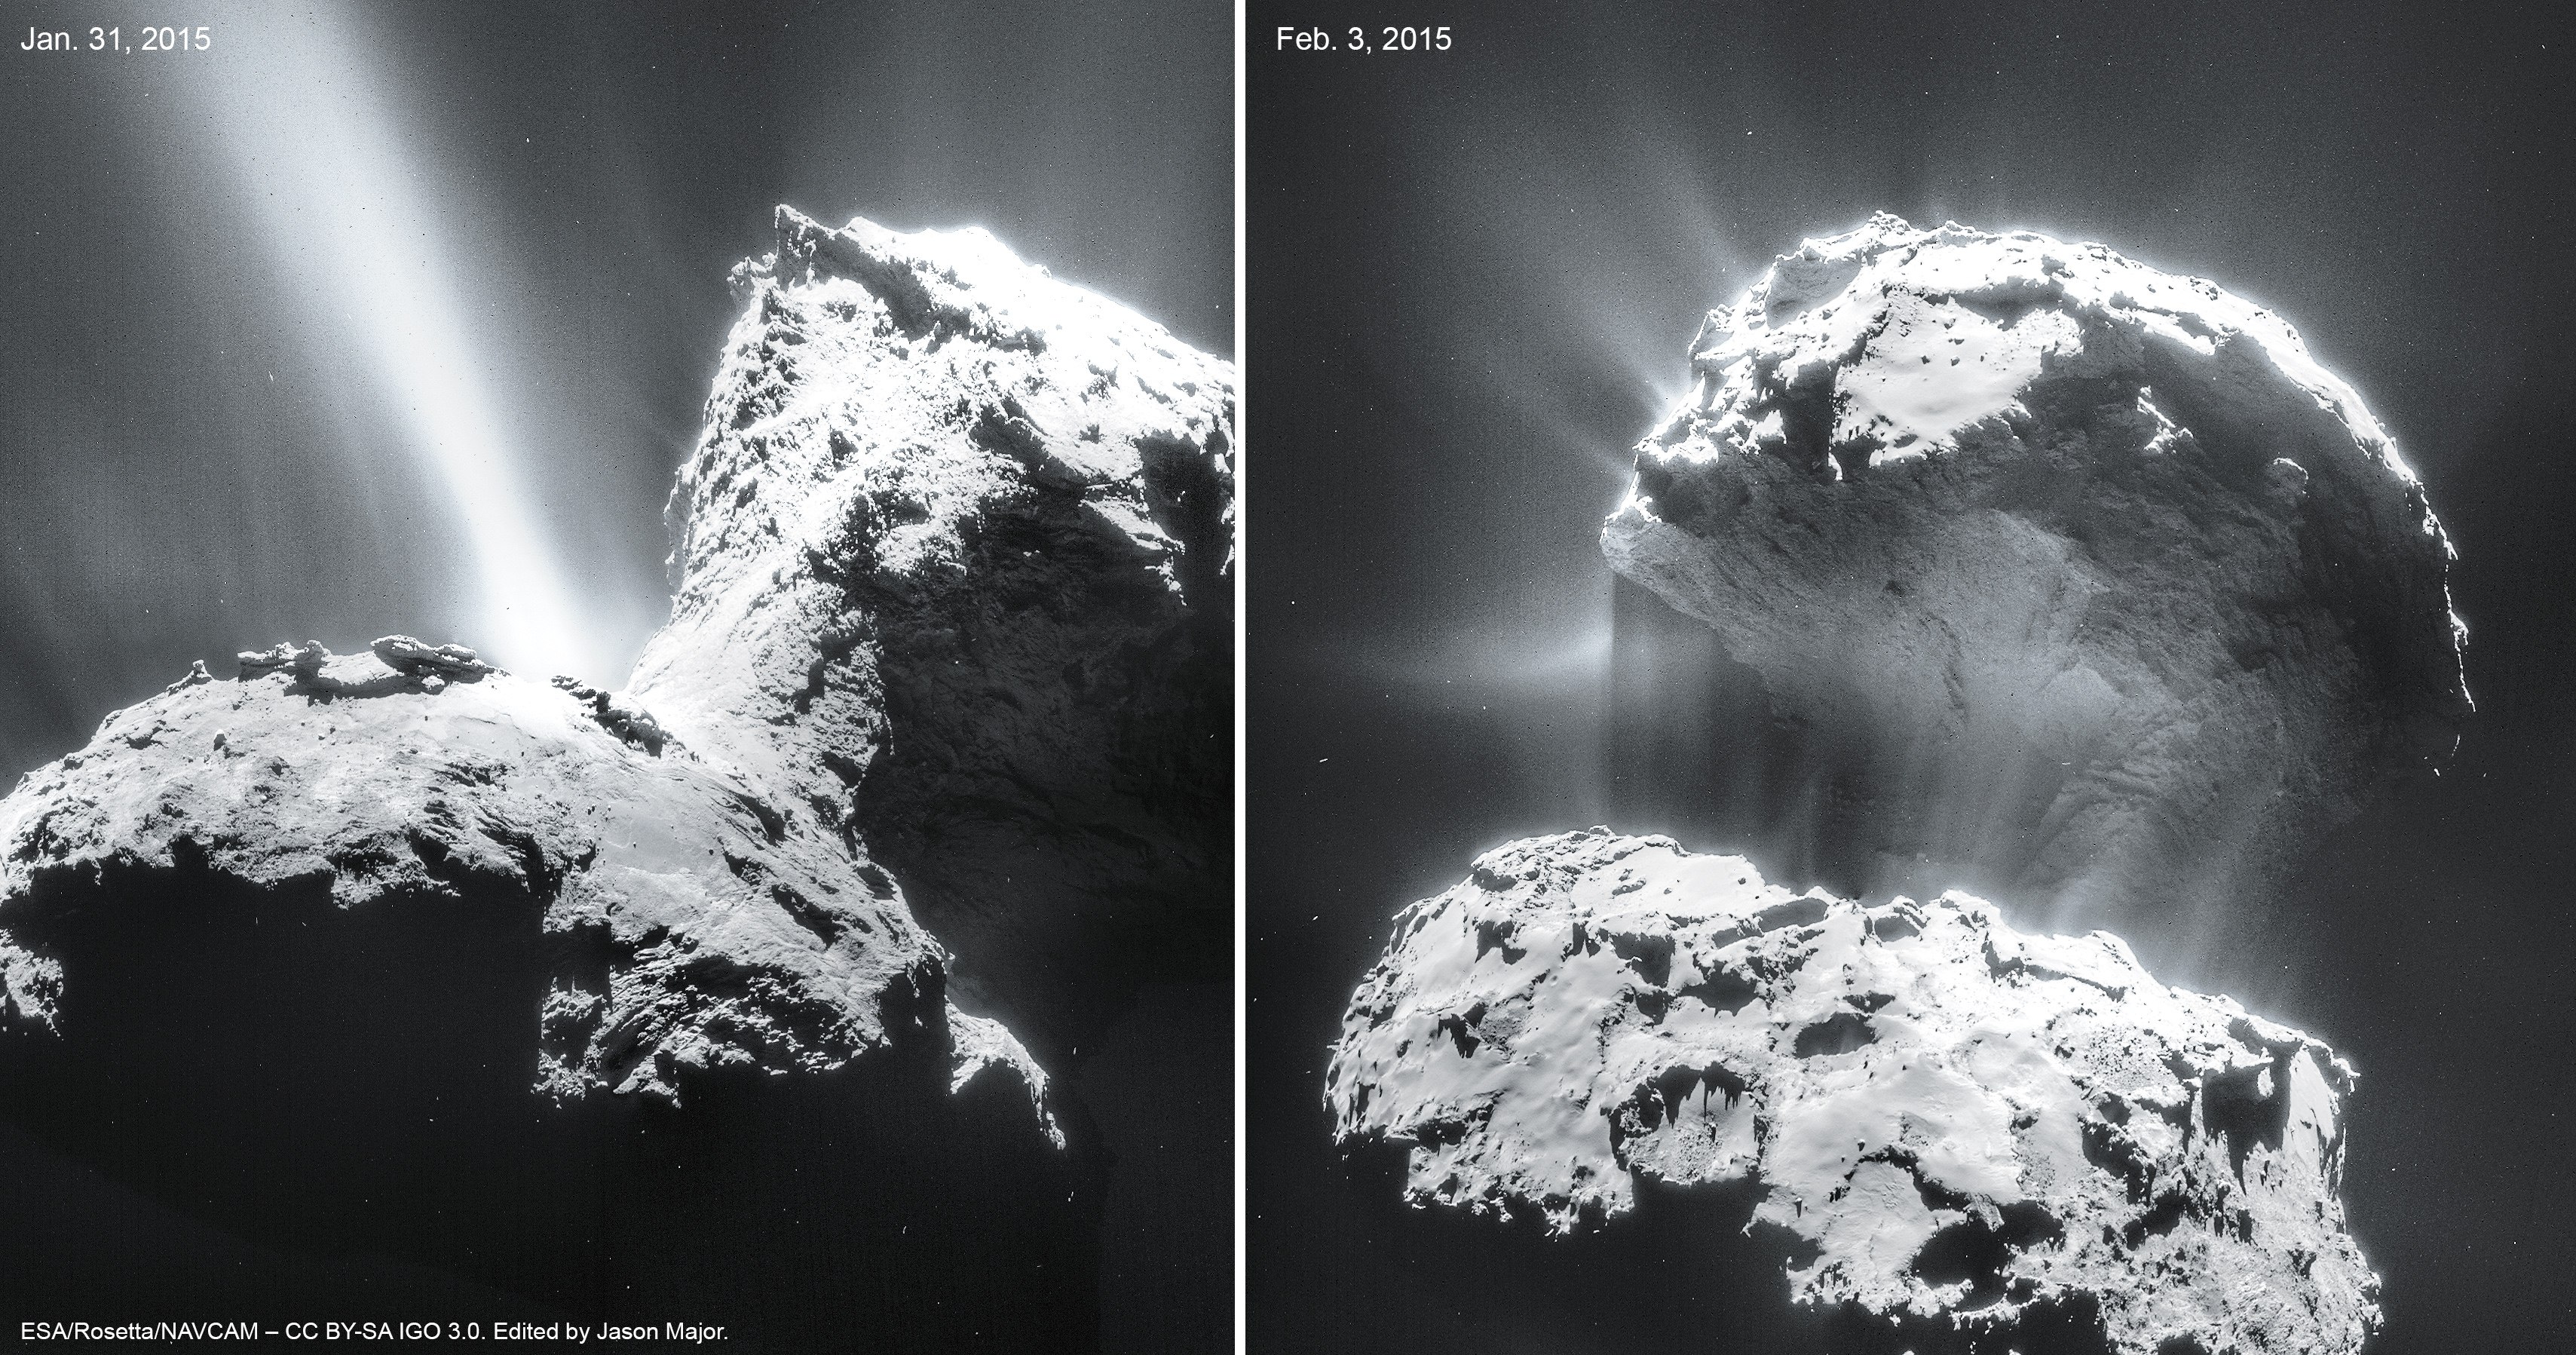 Comet 67p Fires Up Its Jets